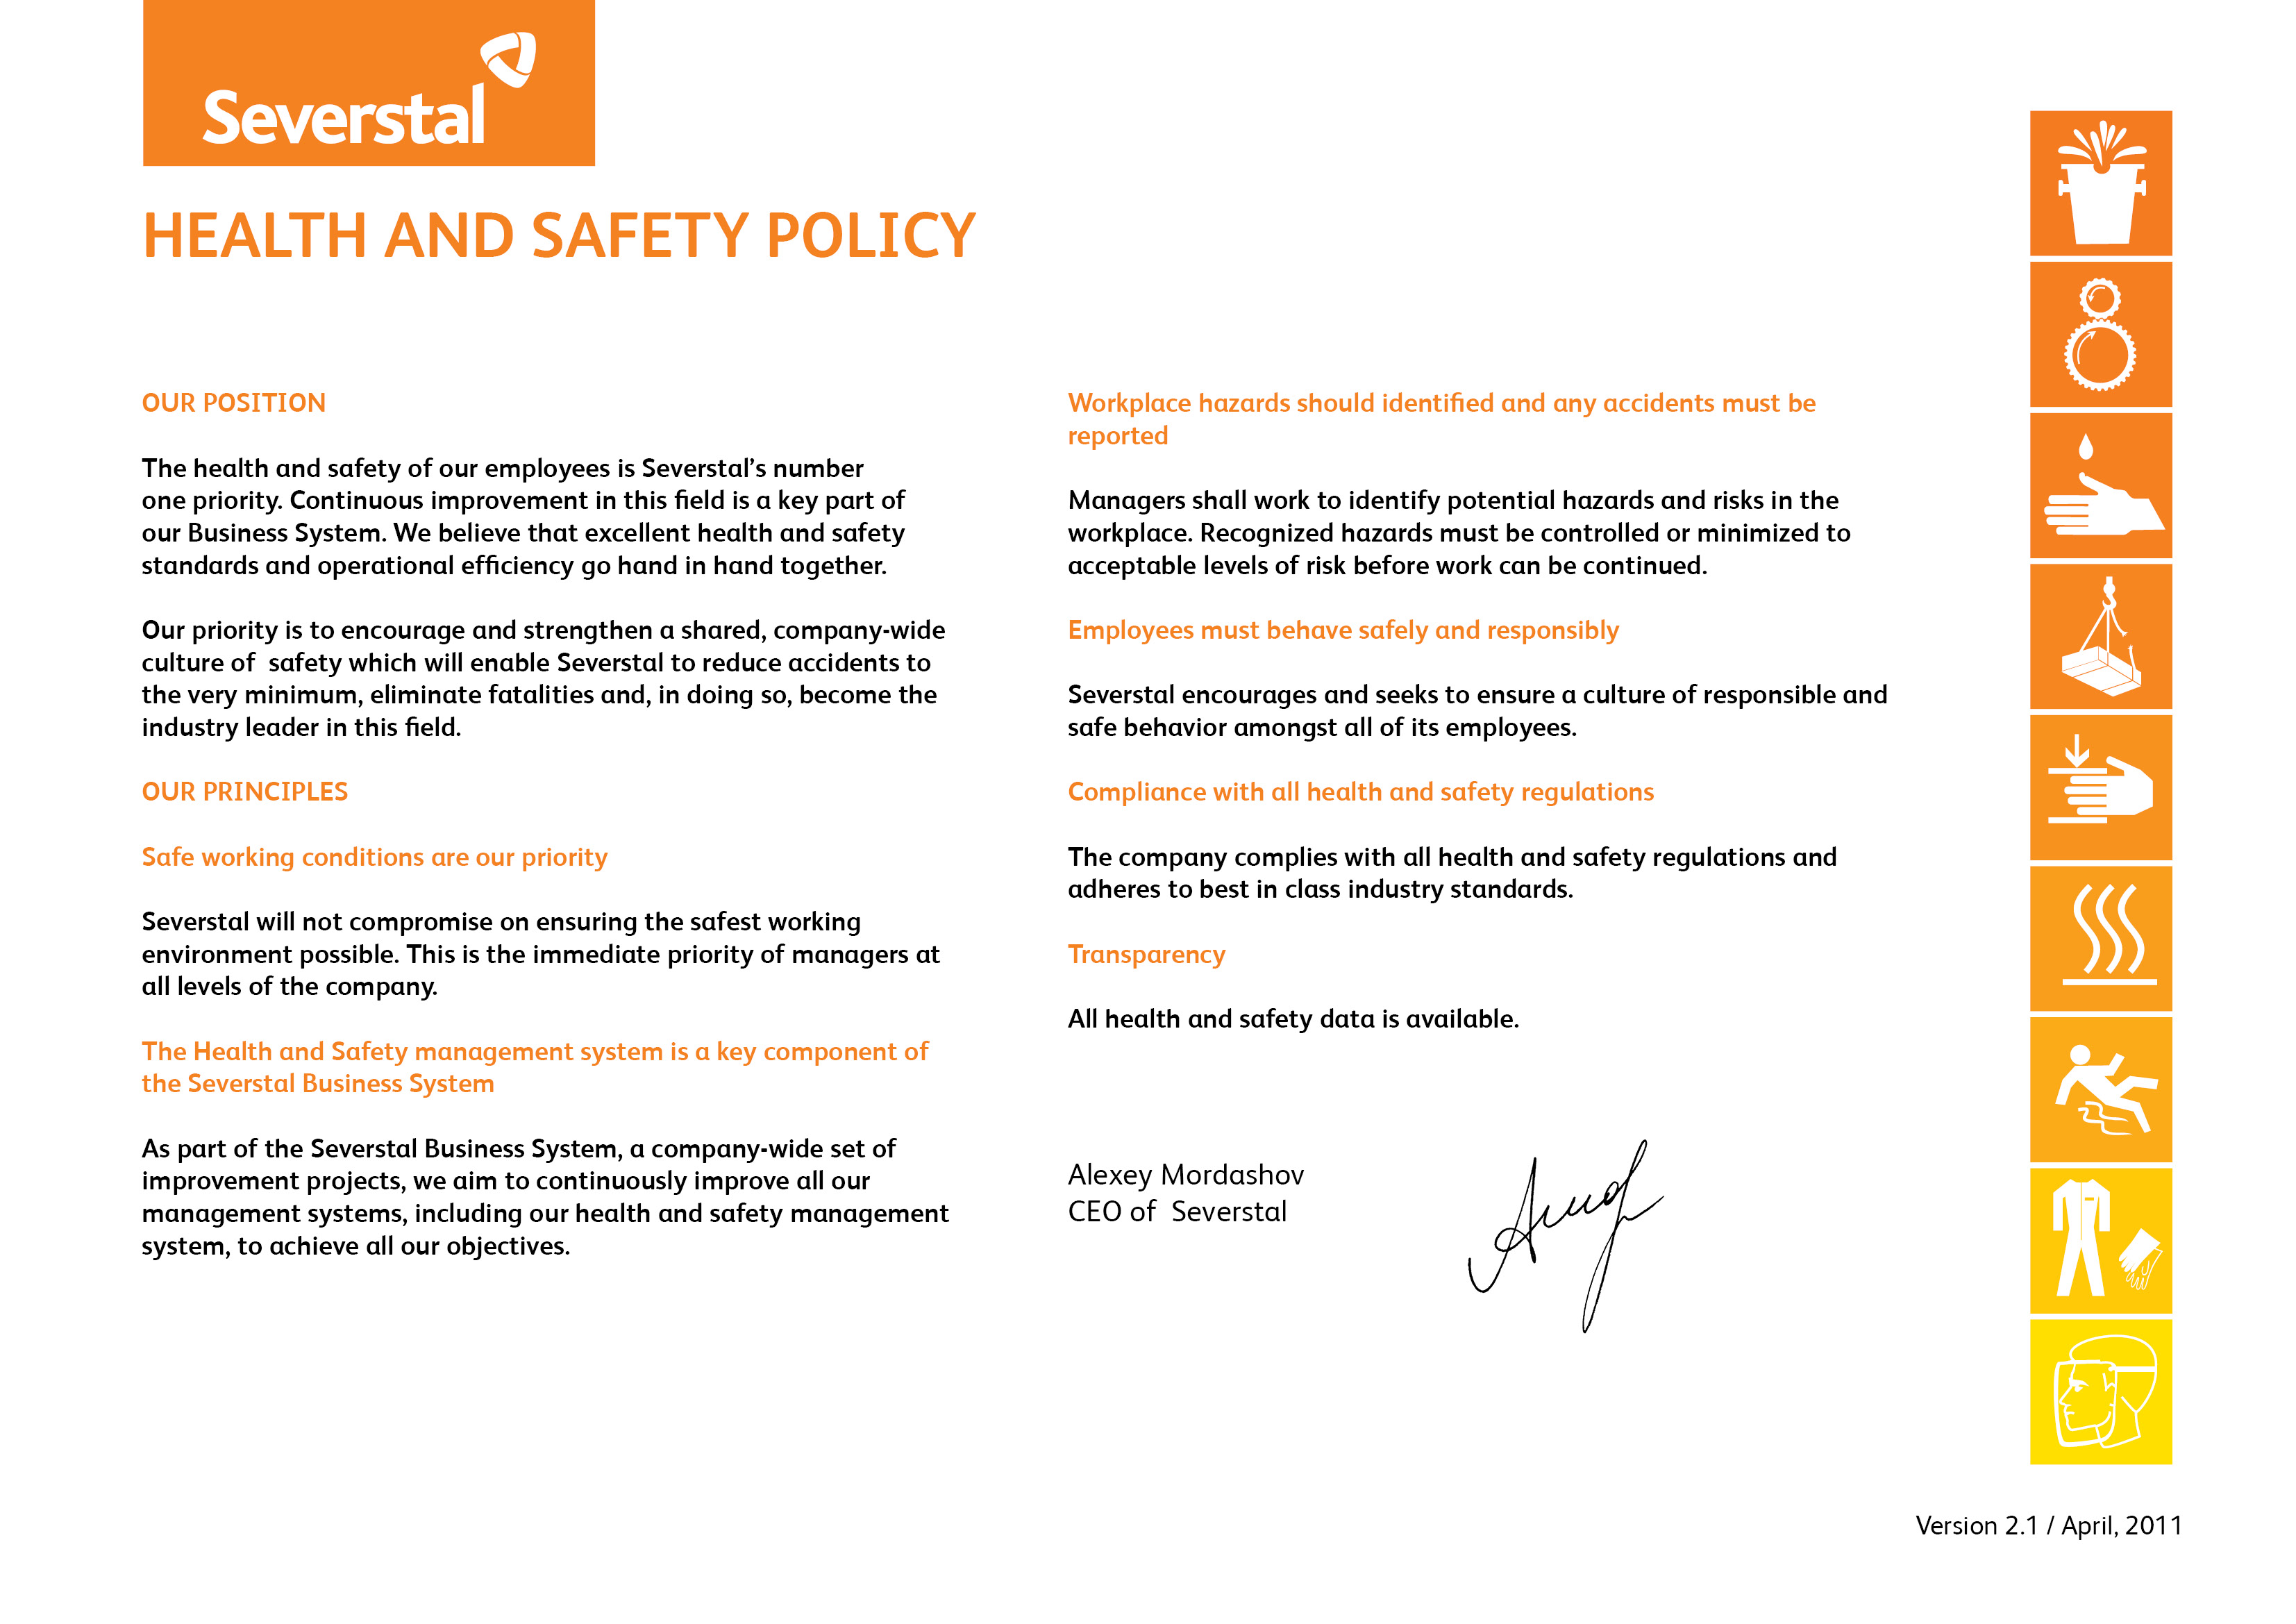 izhora pipe mill corporate responsibility health and safety policy